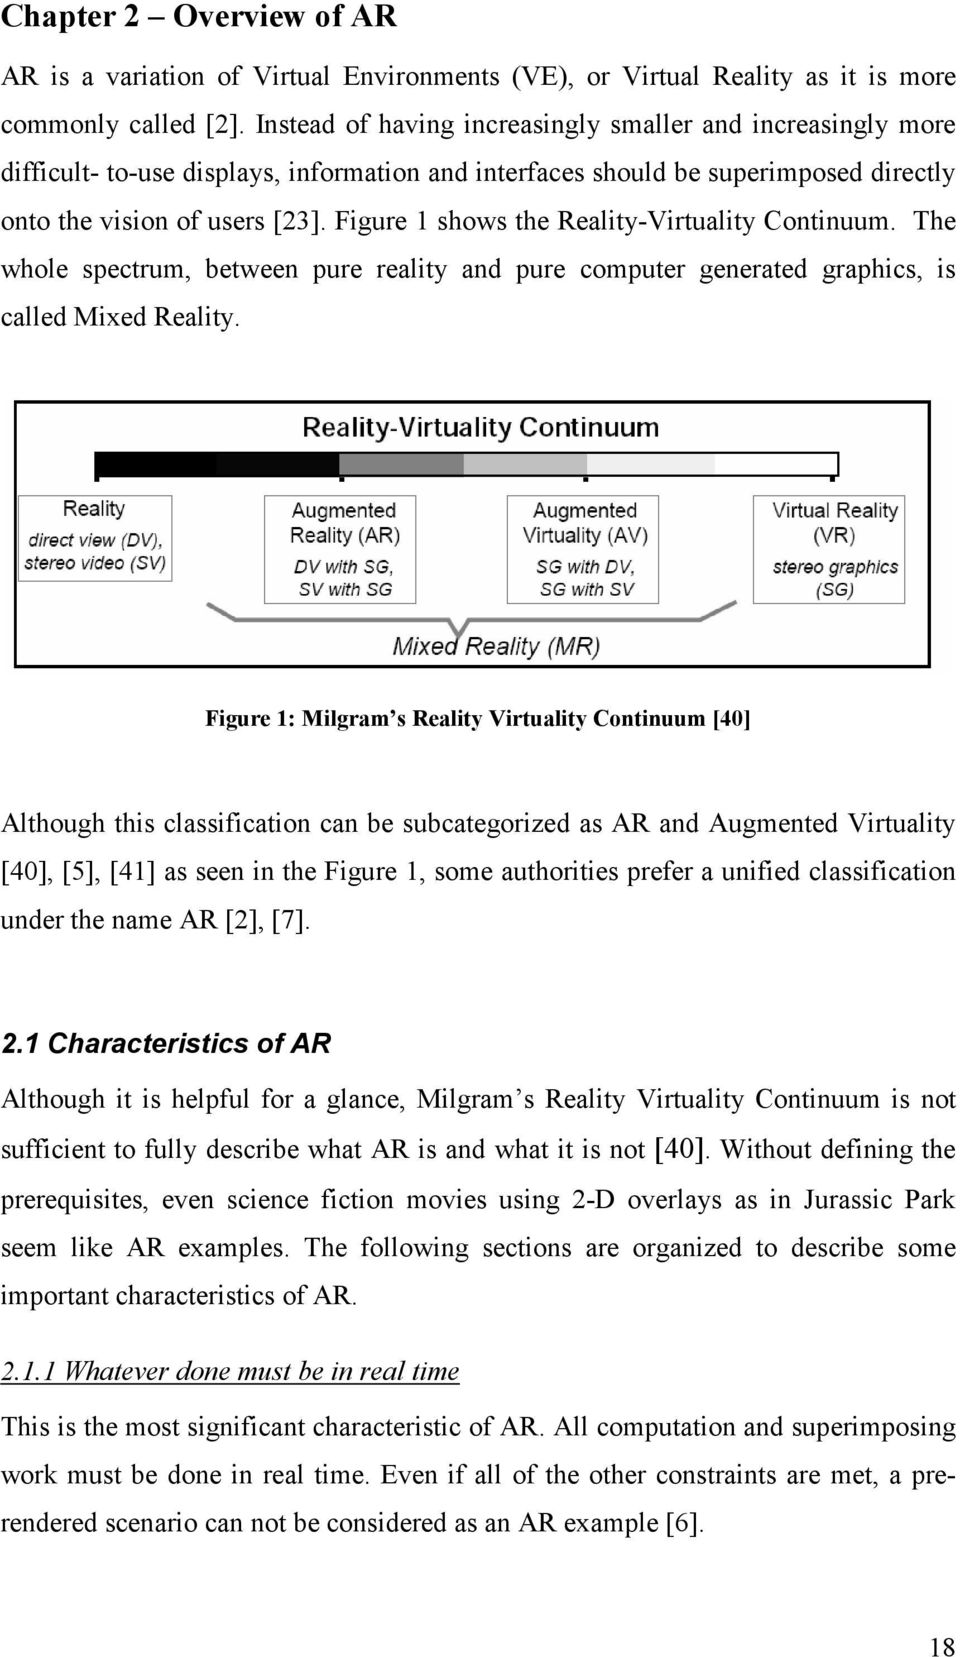 Figure 1 shows the Reality-Virtuality Continuum. The whole spectrum, between pure reality and pure computer generated graphics, is called Mixed Reality.